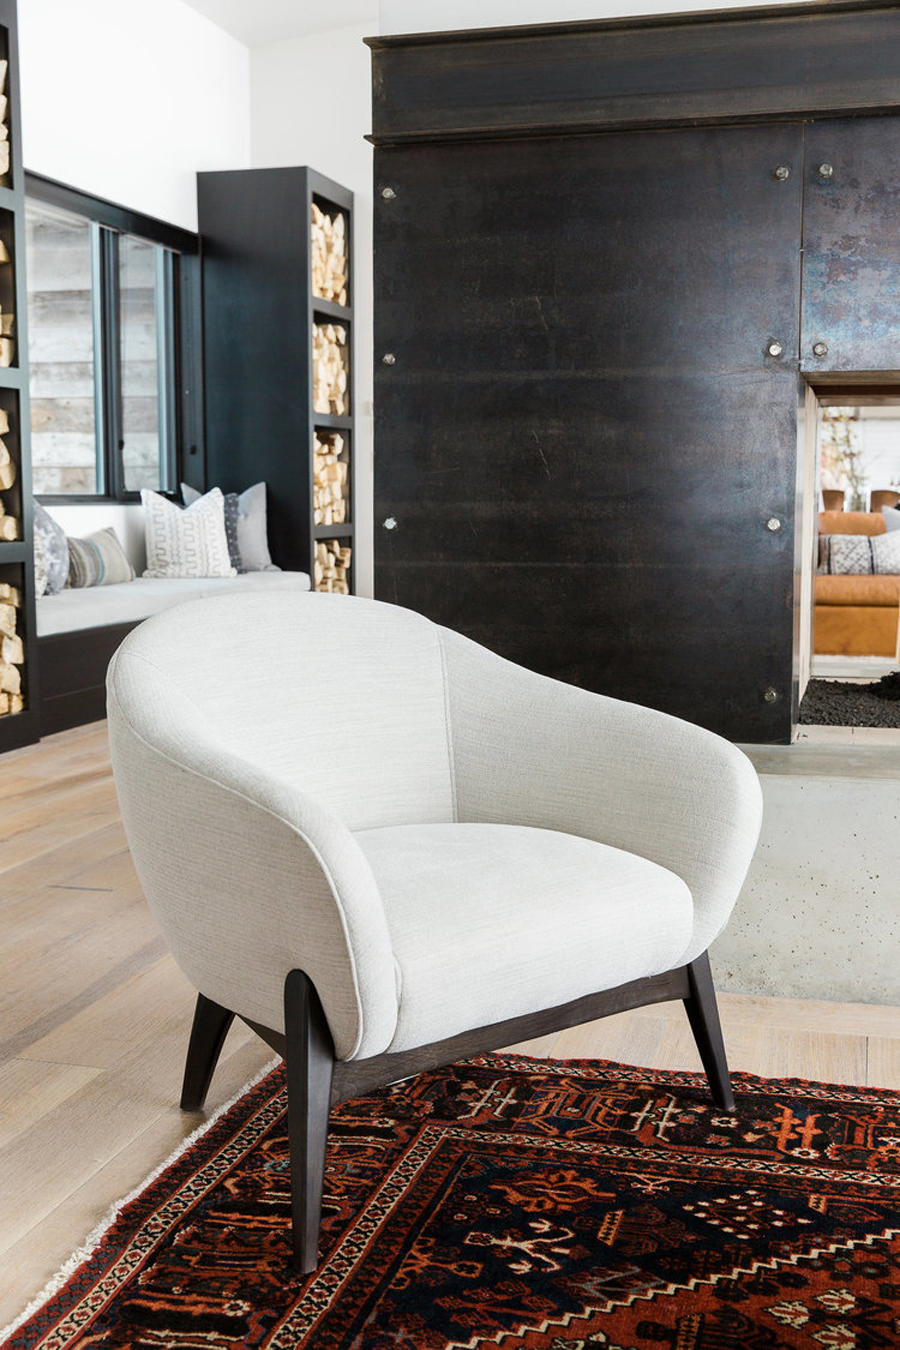 If a modern monochrome house tour mixed with traditional mountain ranch design is your thing then you will love this Park City retreat.